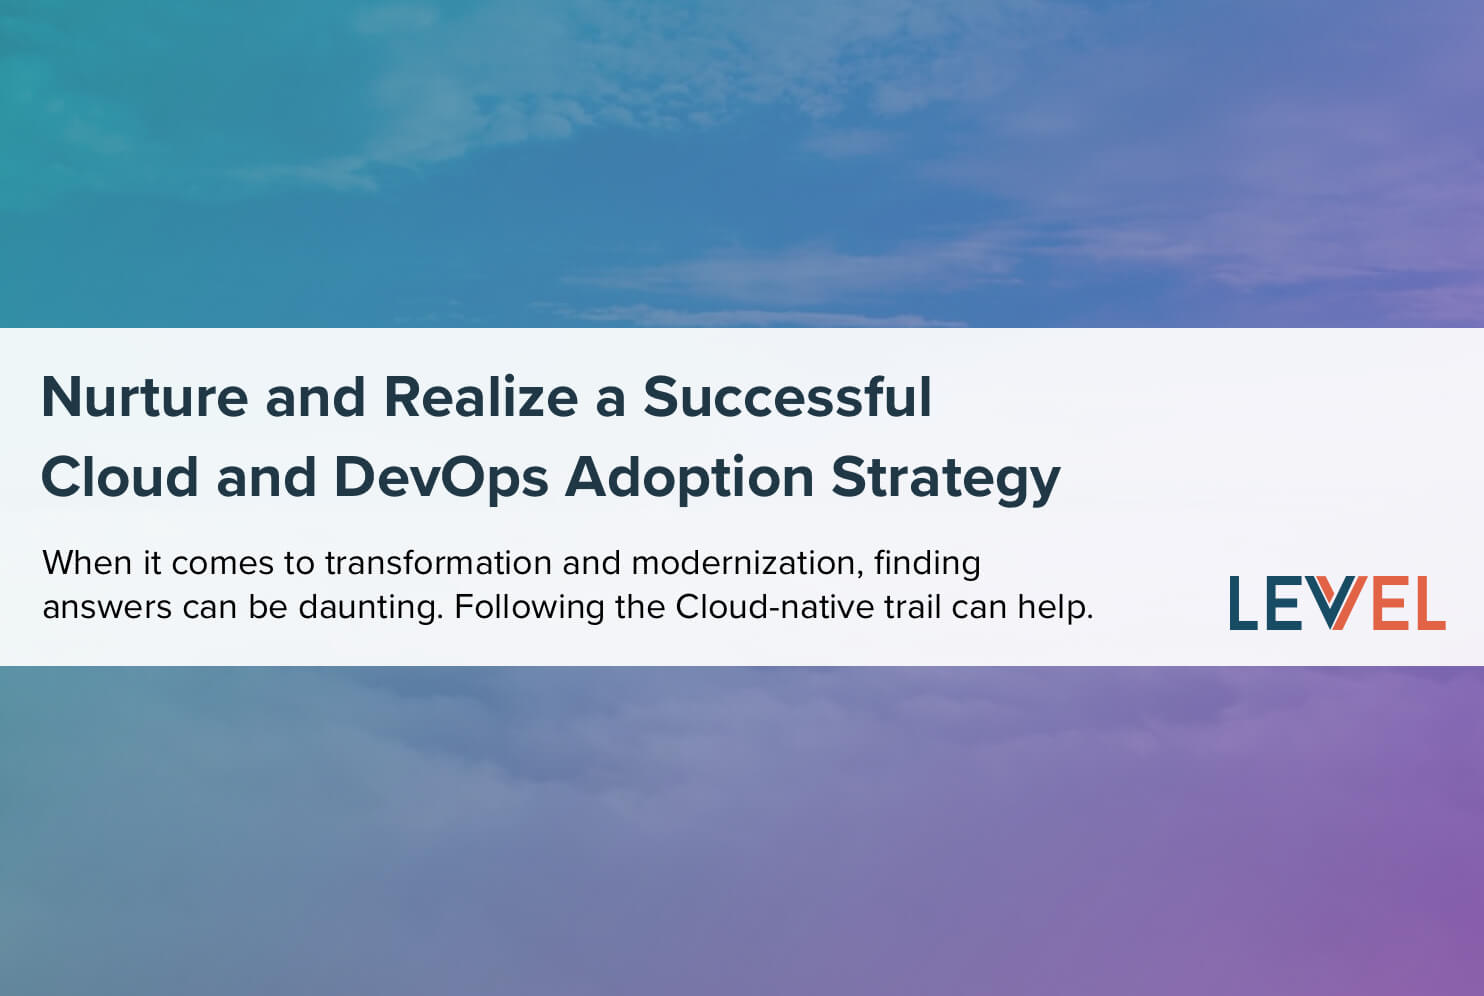 Nurture and Realize a Successful Cloud and DevOps Adoption Strategy